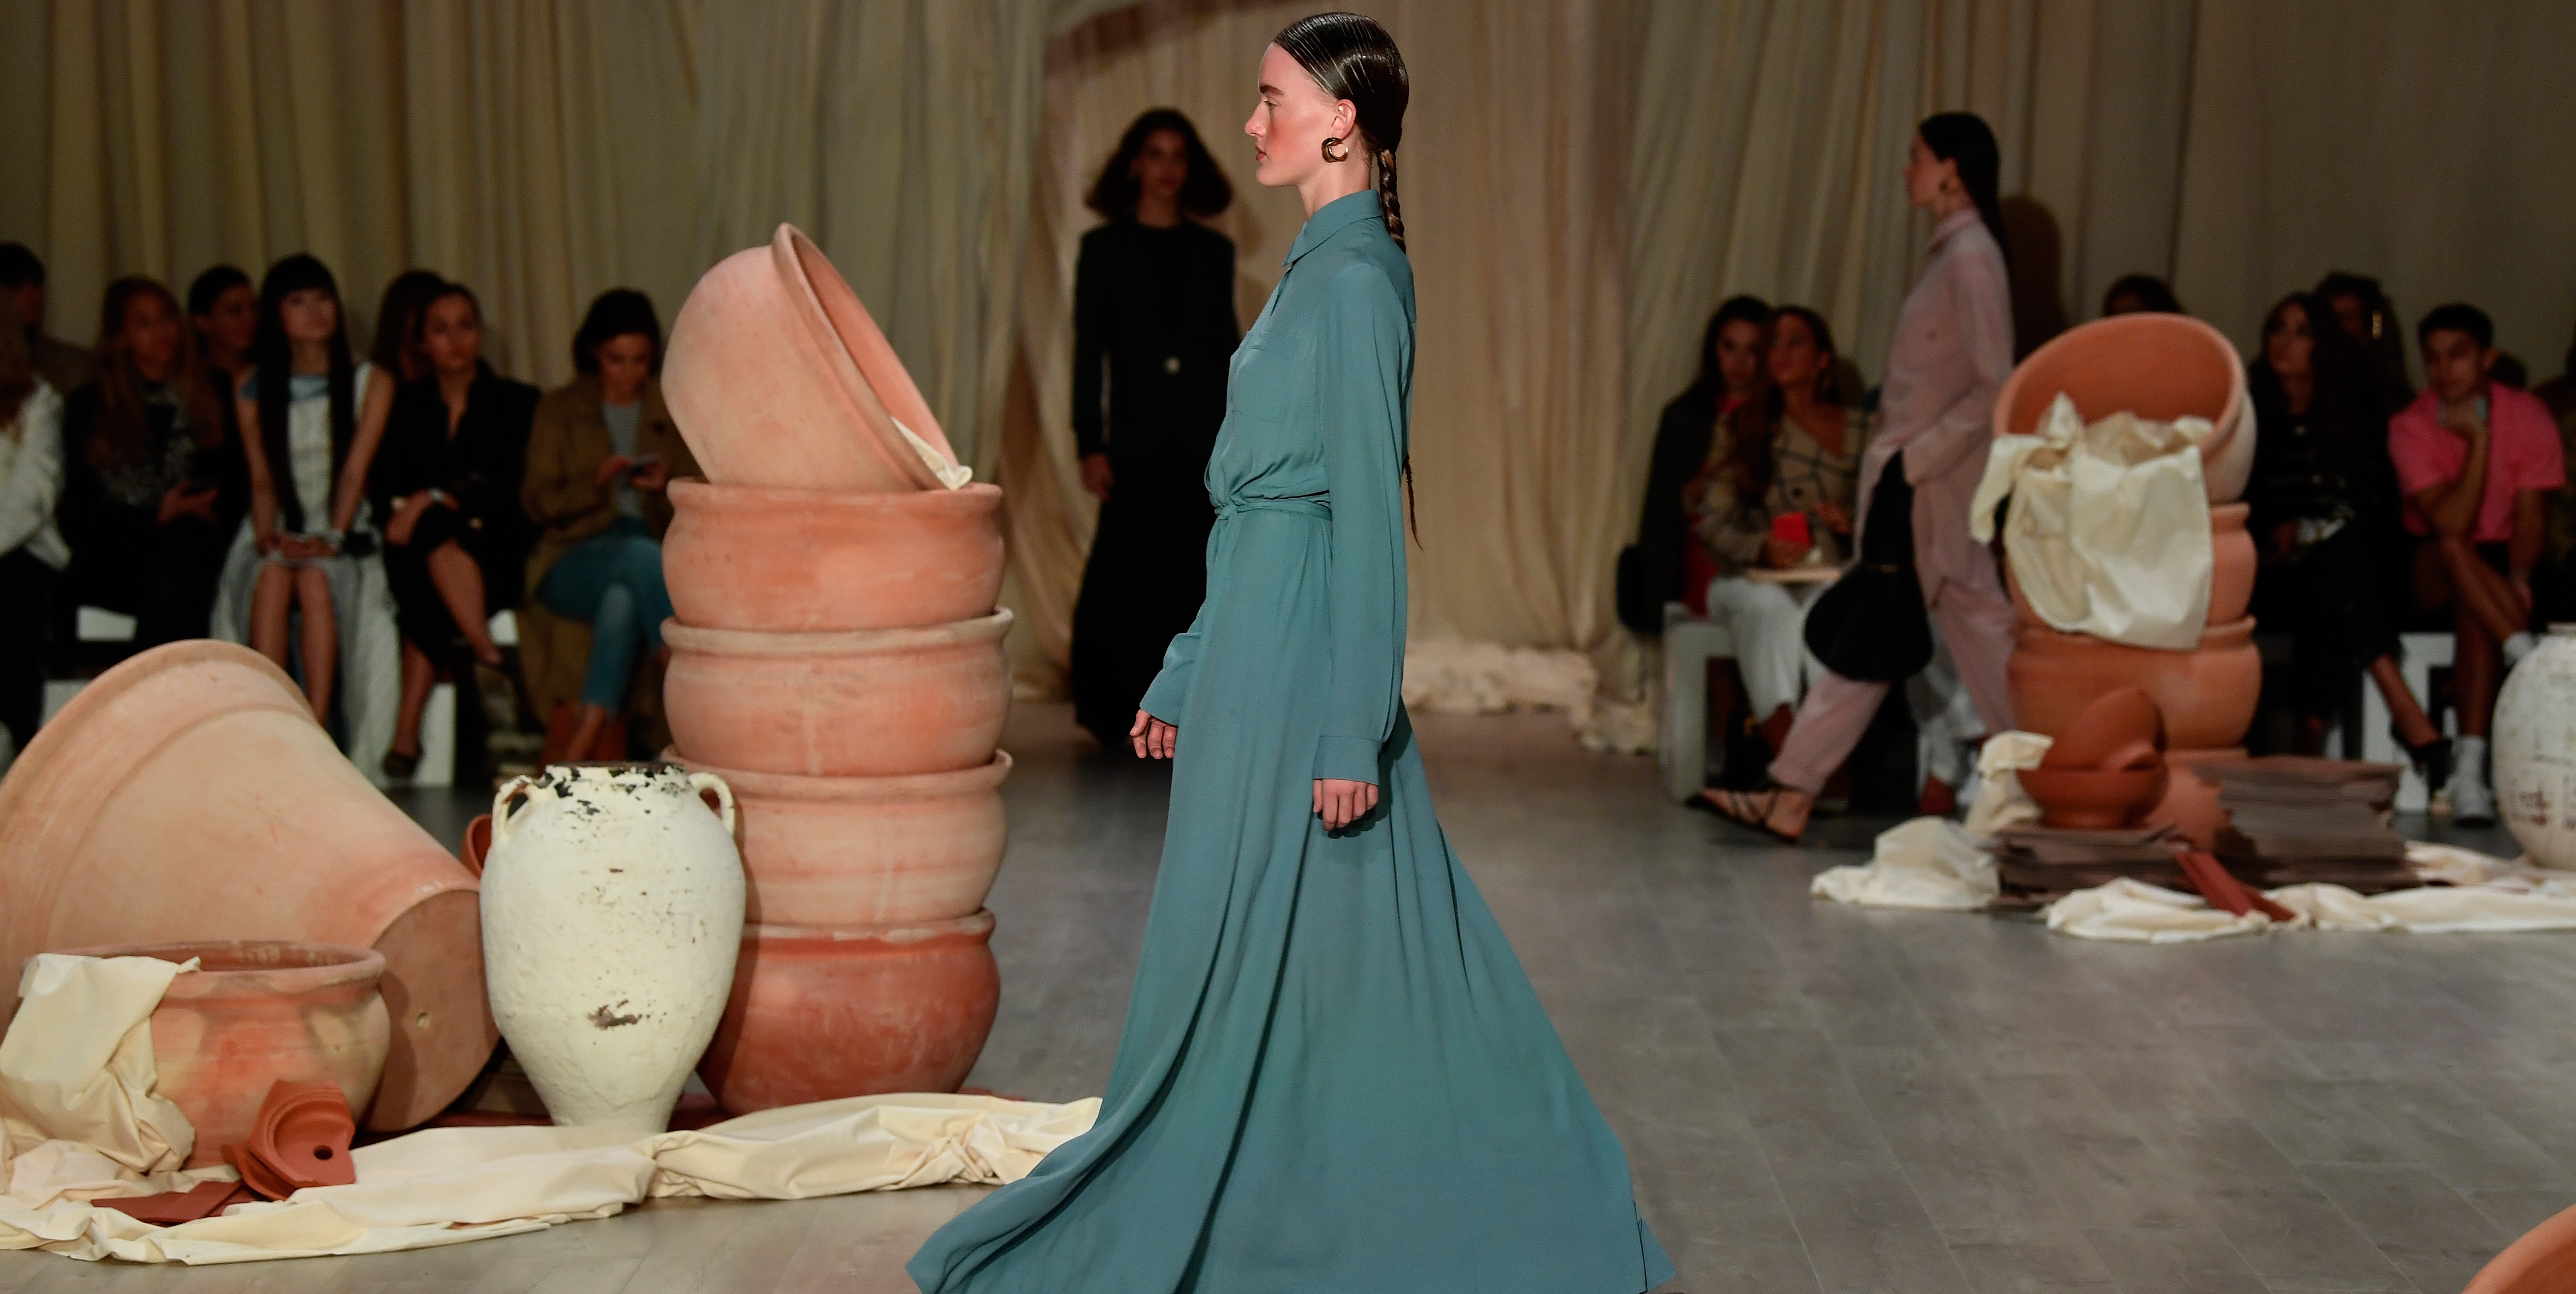 Sydney Fashion Week delivers modesty in spades